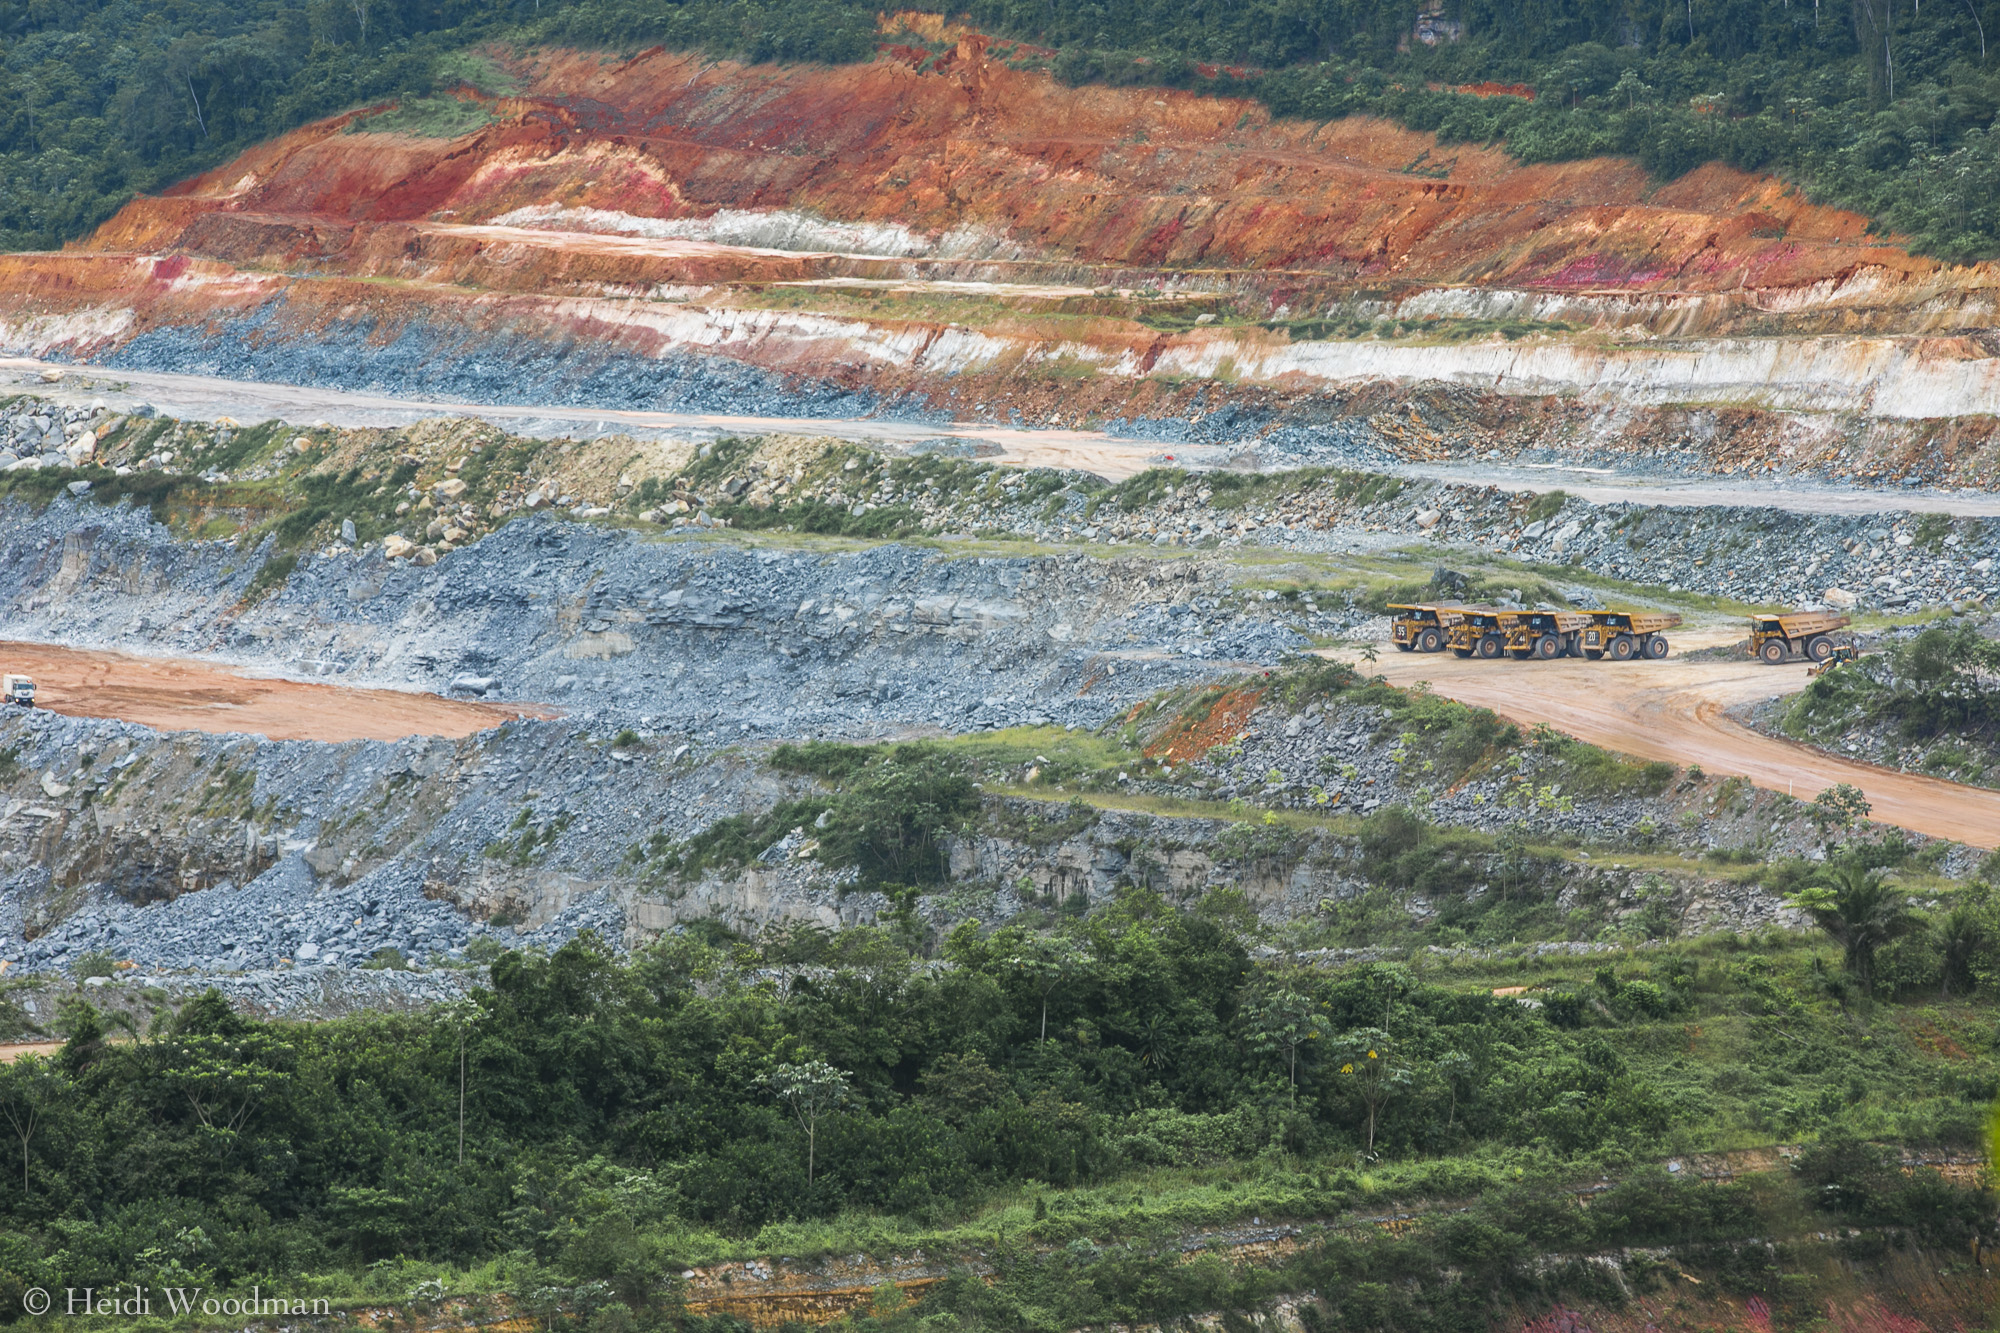 One of the pits at Tarkwa mine cuts into the landscape.